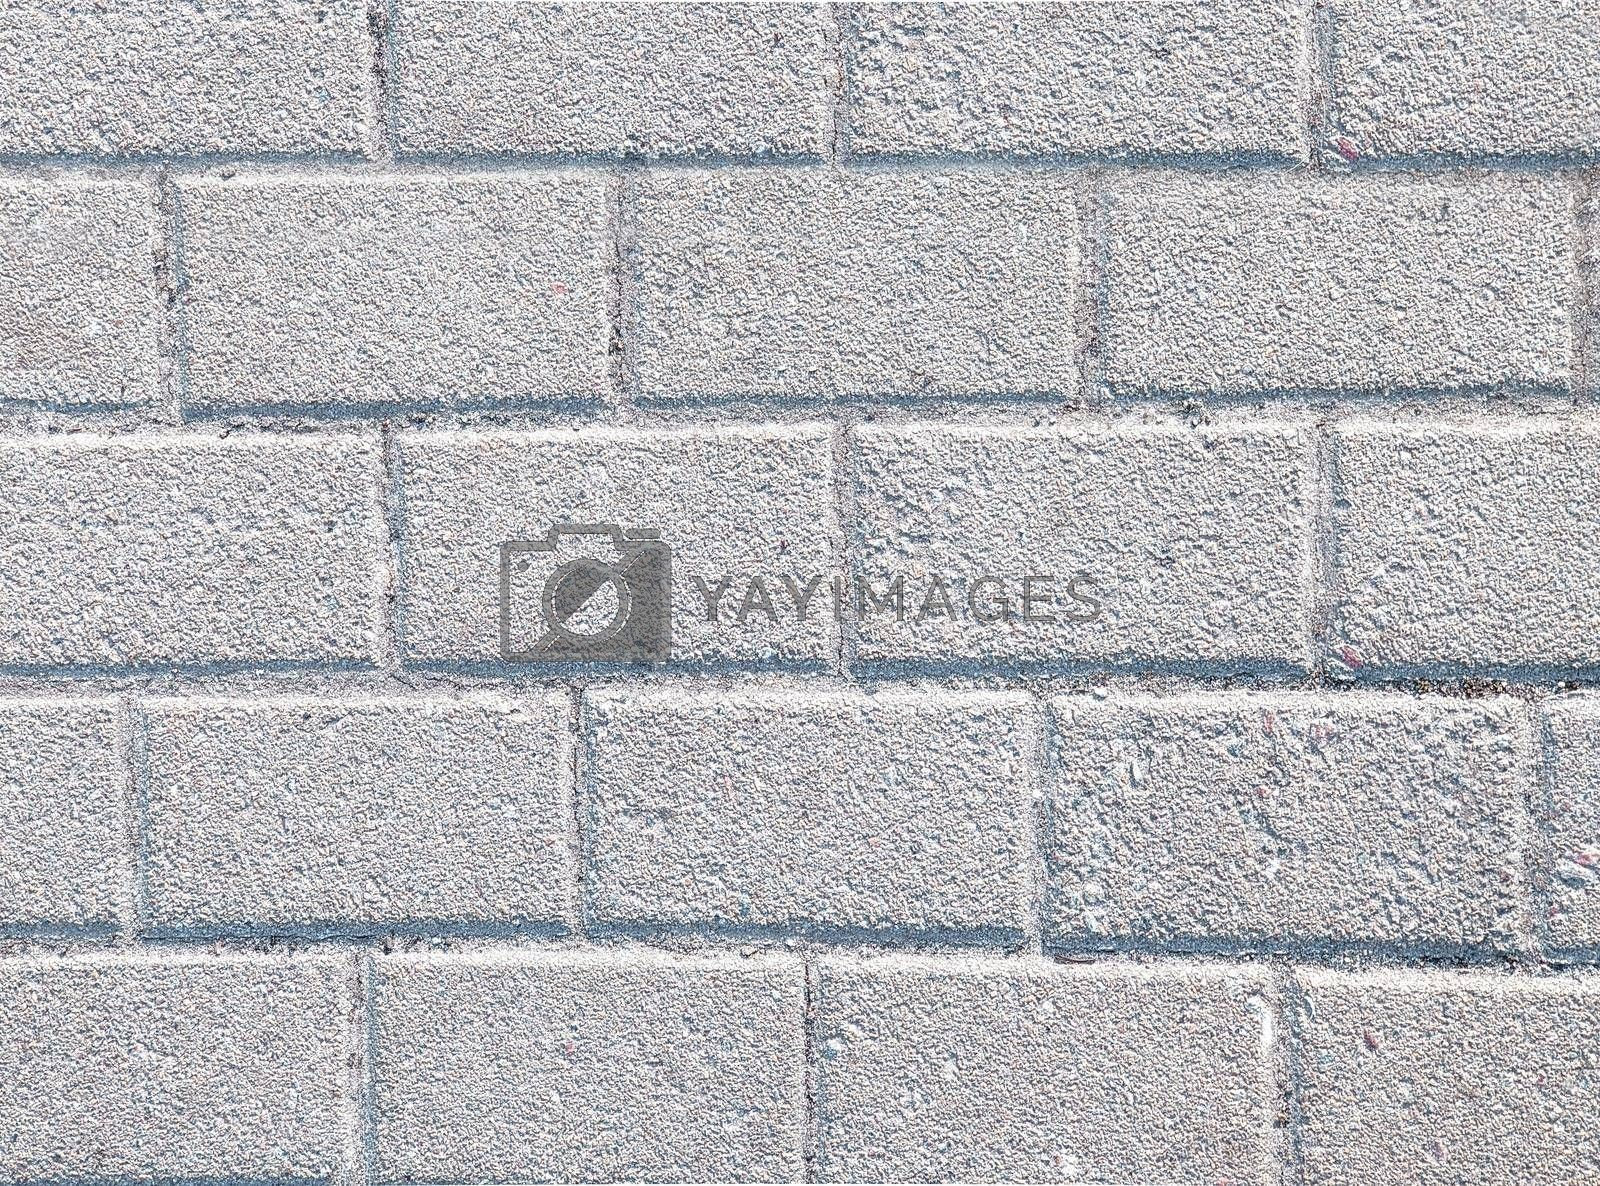 Royalty free image of Abstract background of old cobblestone pavement close-up view by Nickstock